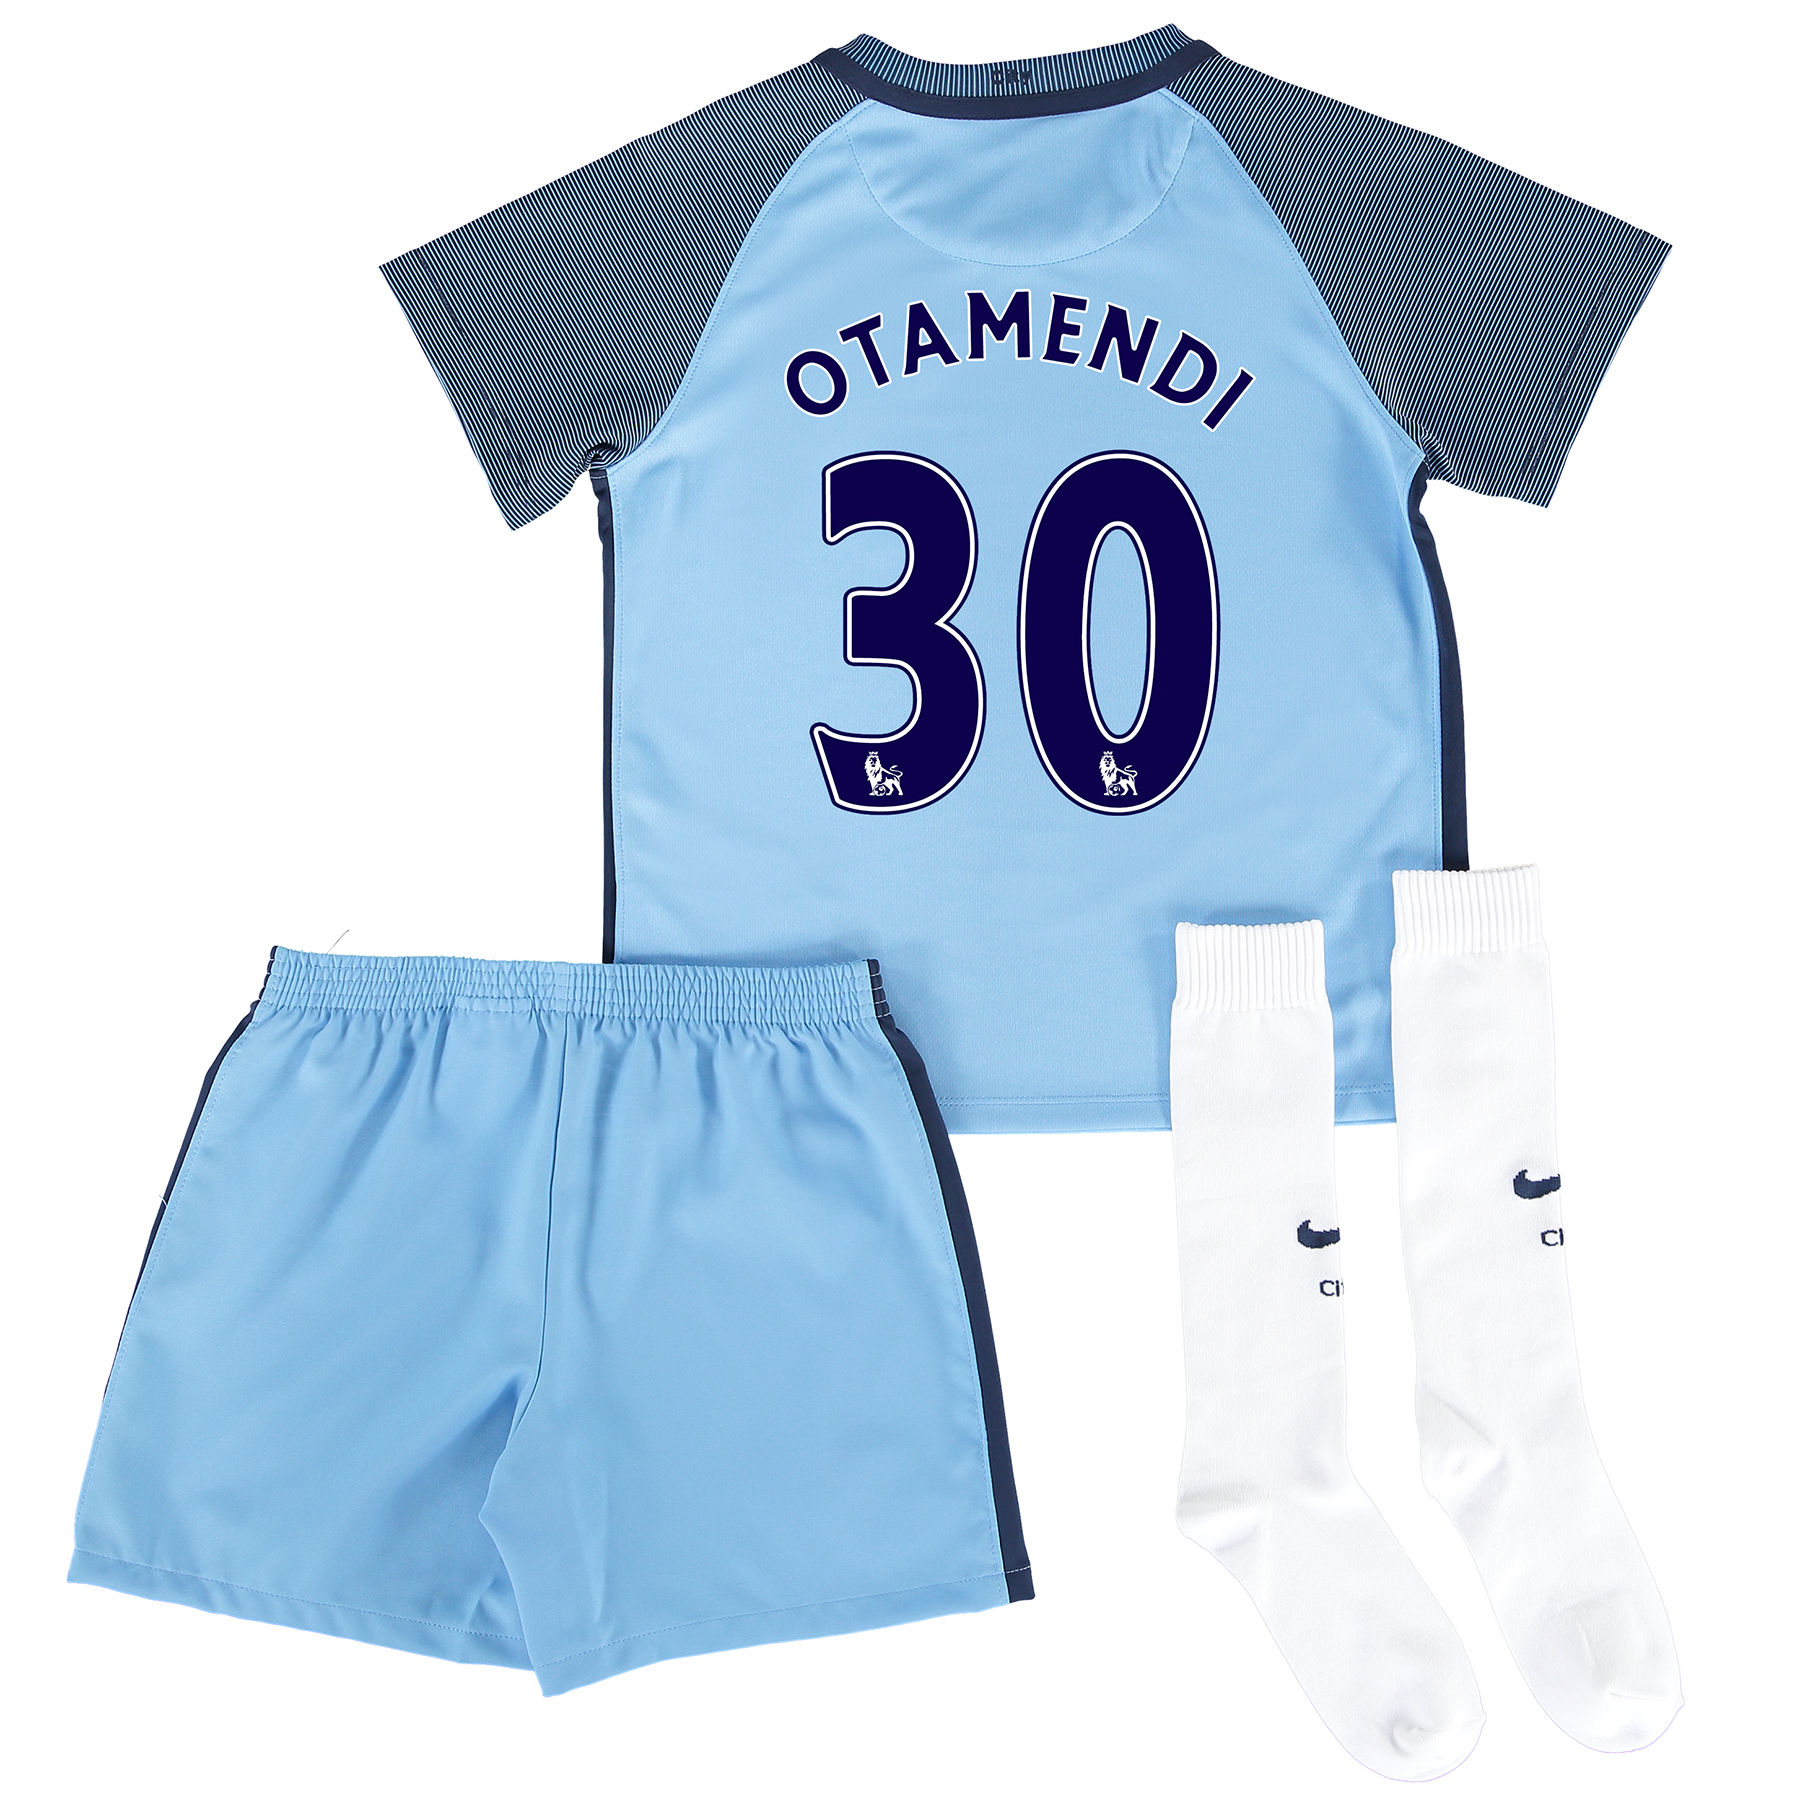 Manchester City Home Kit 2016-17 - Little Kids with Otamendi 30 printi